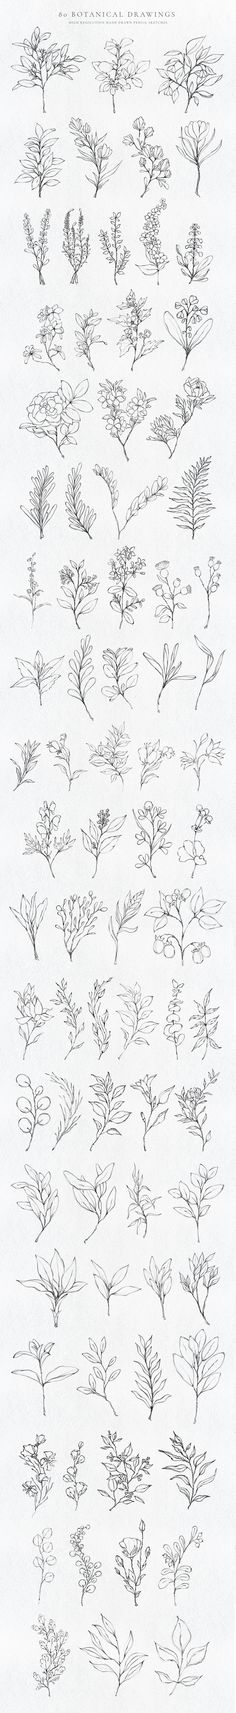 80 Botanical Hand Drawn Illustration by Zeppelin Graphics on Floral Illustrations, Pencil Illustration, Graphic Illustration, Hand Drawn Flowers, Bullet Journal Ideas Pages, Botanical Flowers, Drawing Tips, Flower Tattoos, Arm Tattoo